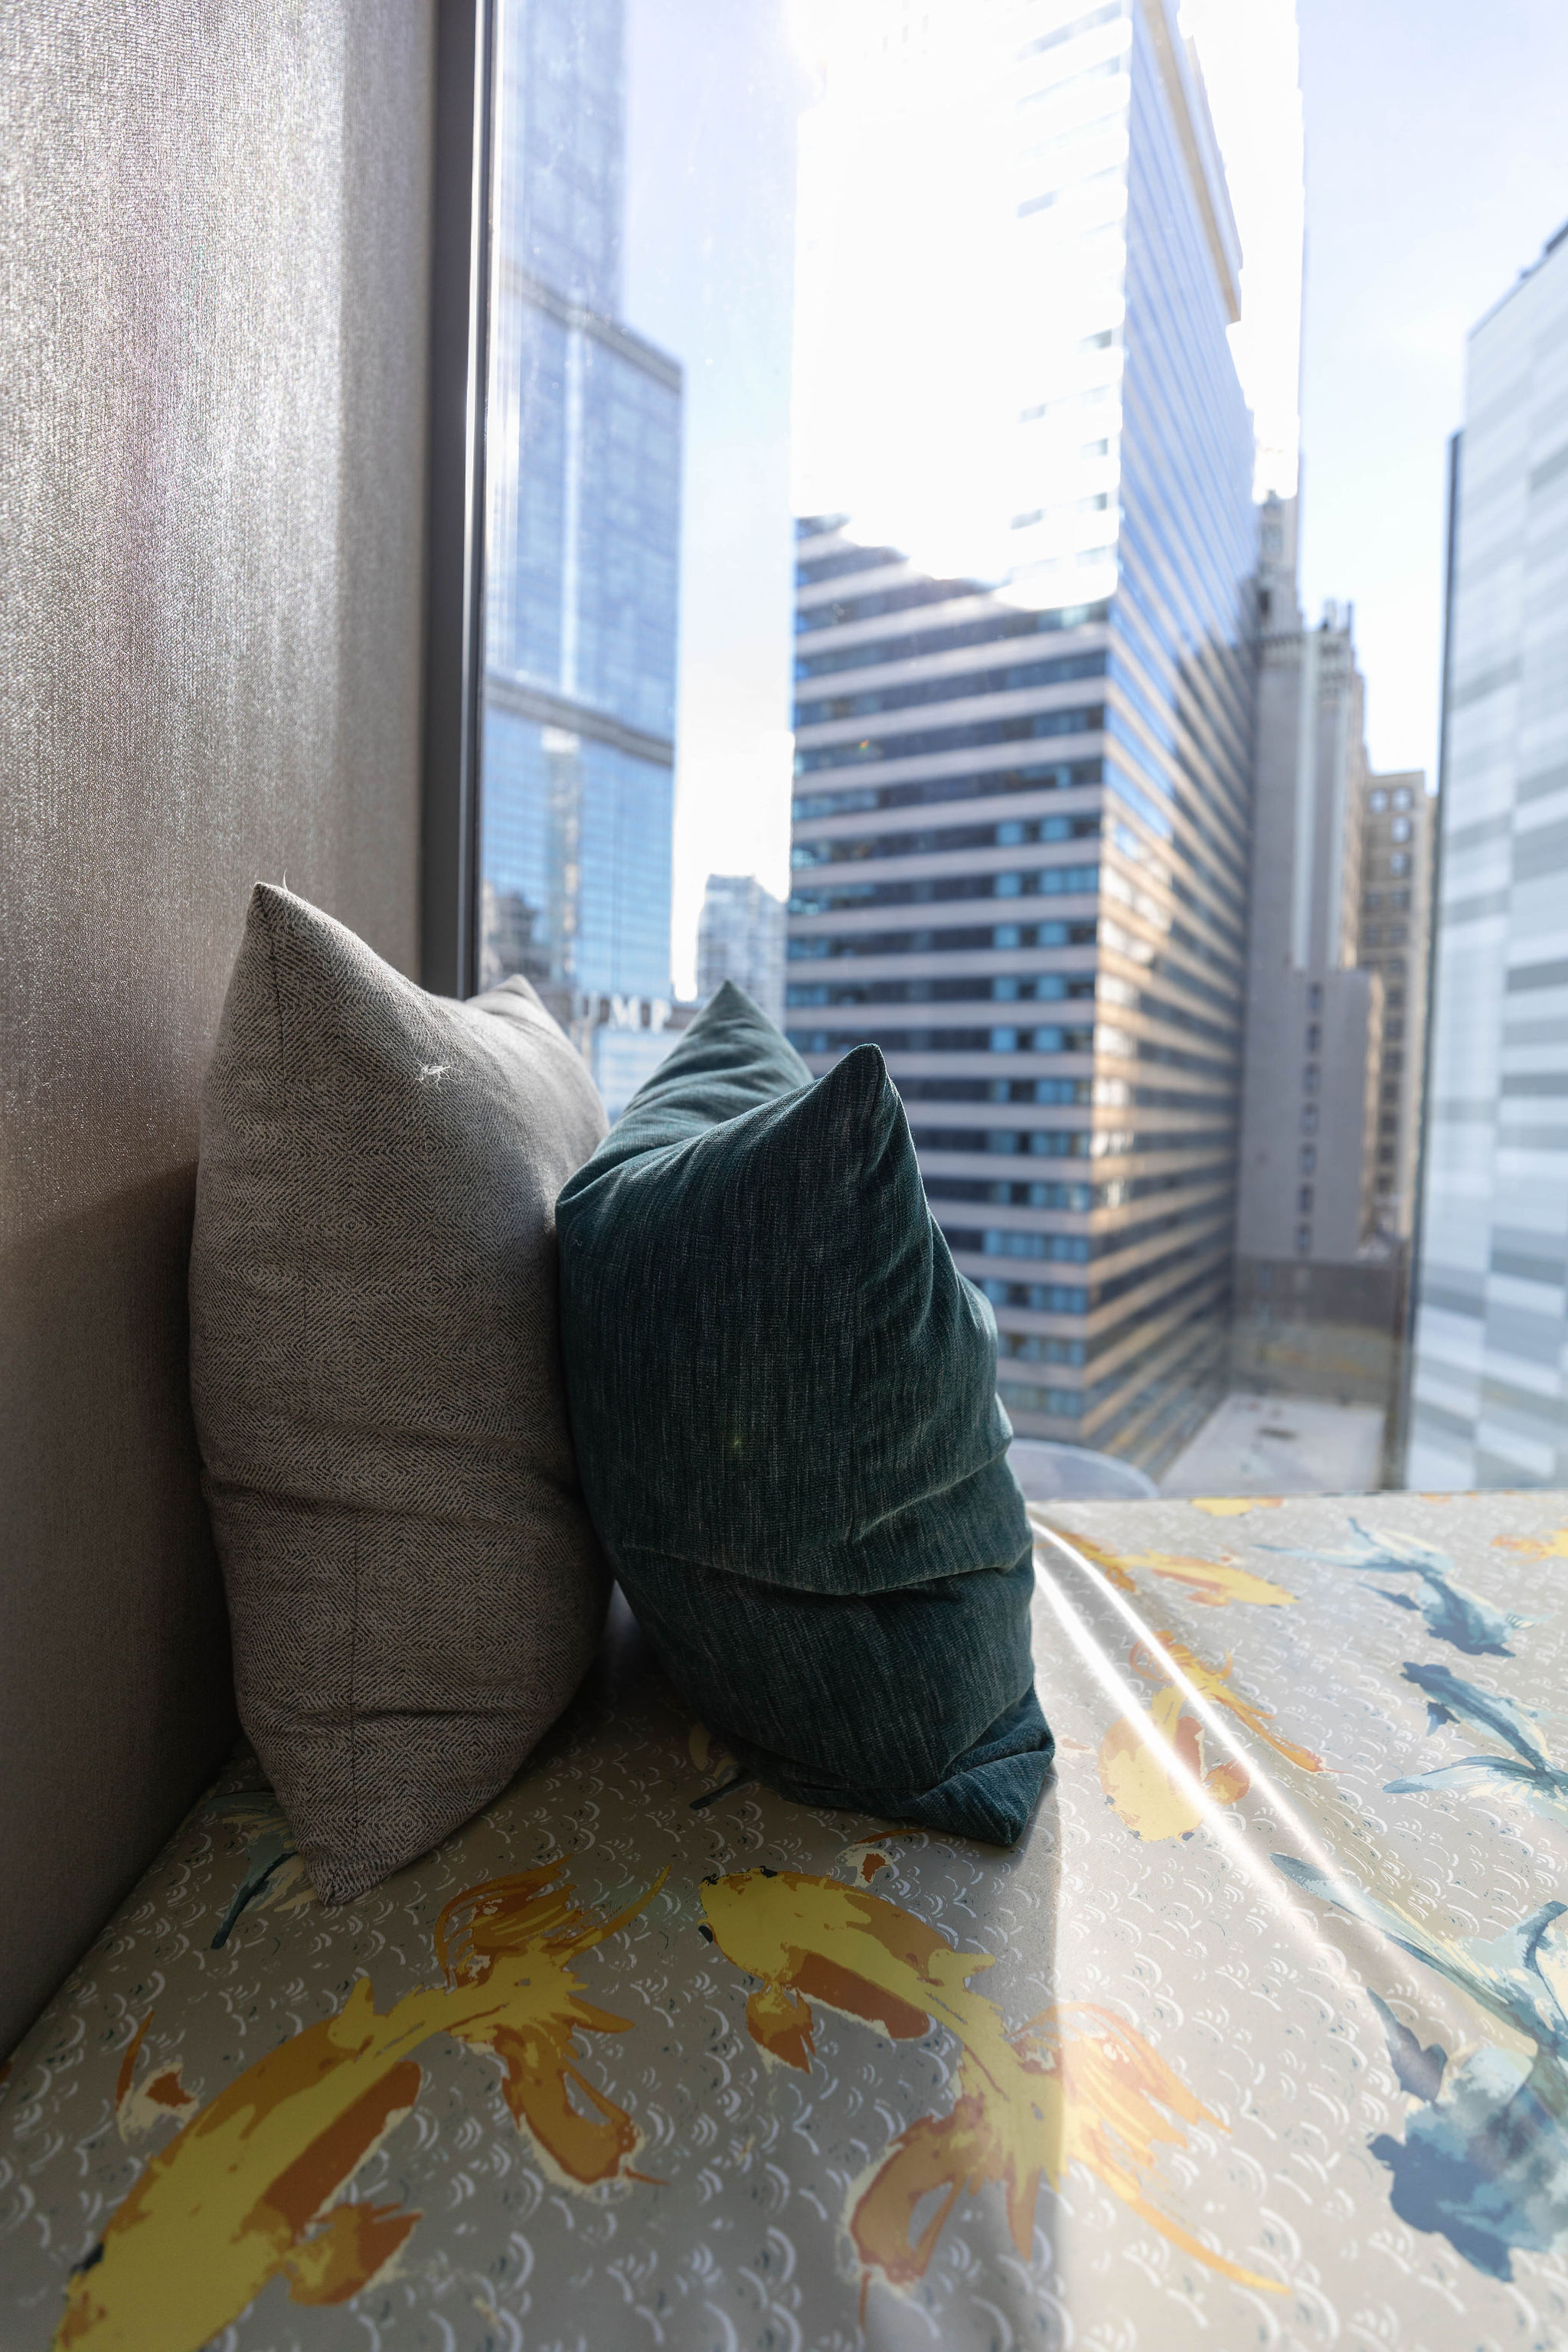 Kimpton Hotel Monaco Chicago Review Hotel Photographs Luxury Hotels Windy City CHI Town